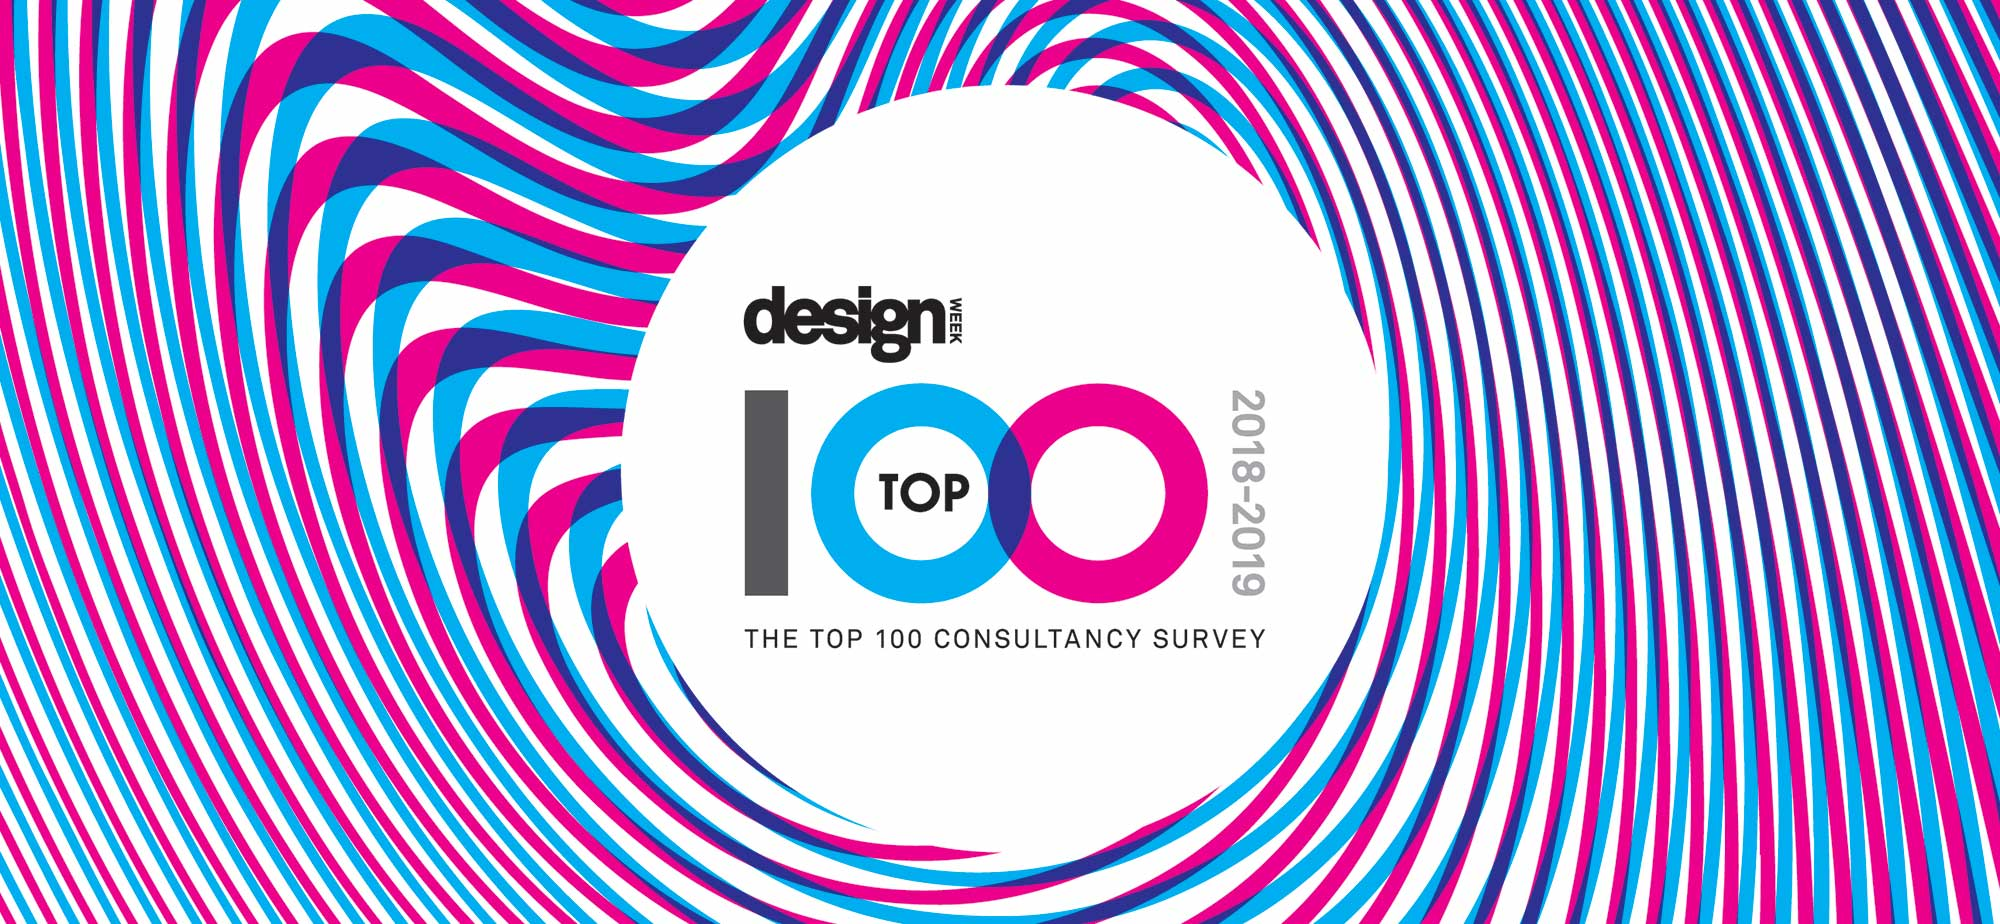 Raymont-Osman Ranked 6th in Product Design by Design Week